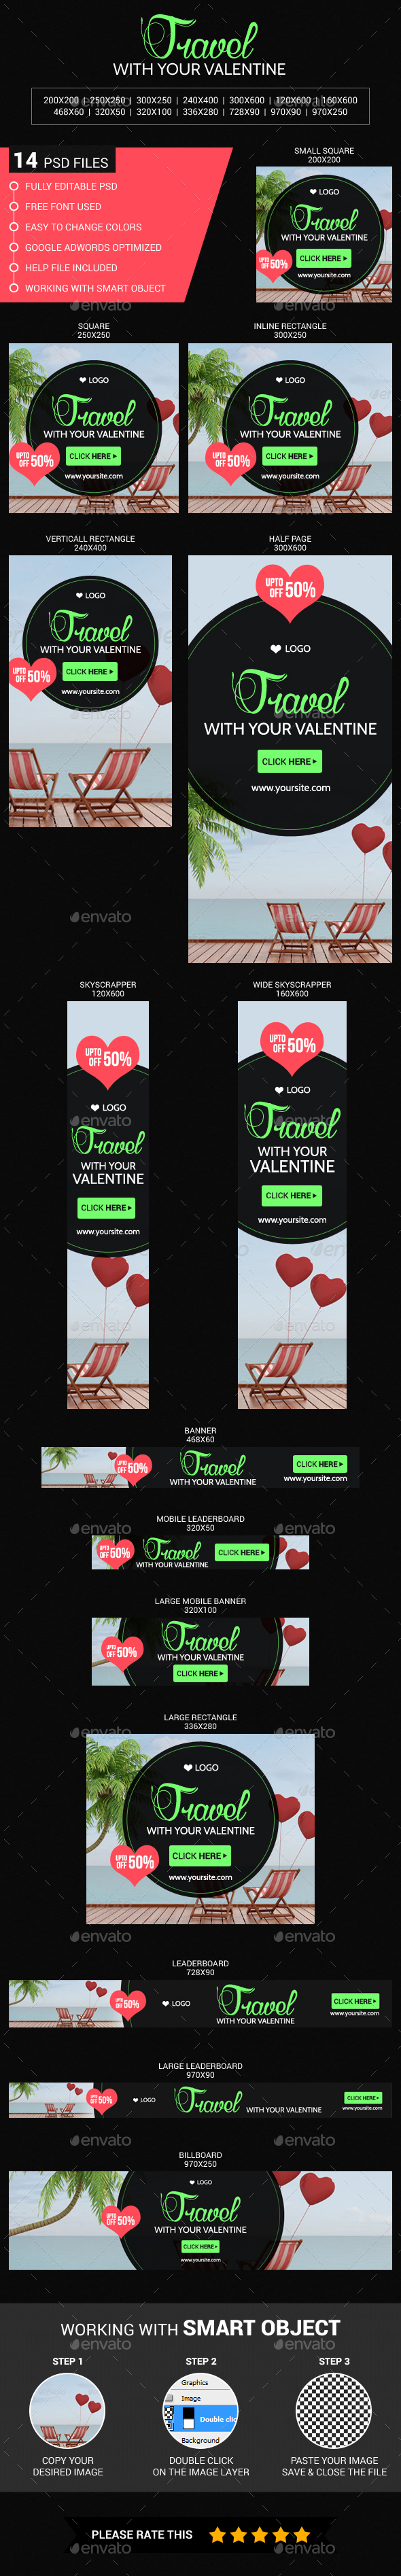 Travel with your valentine